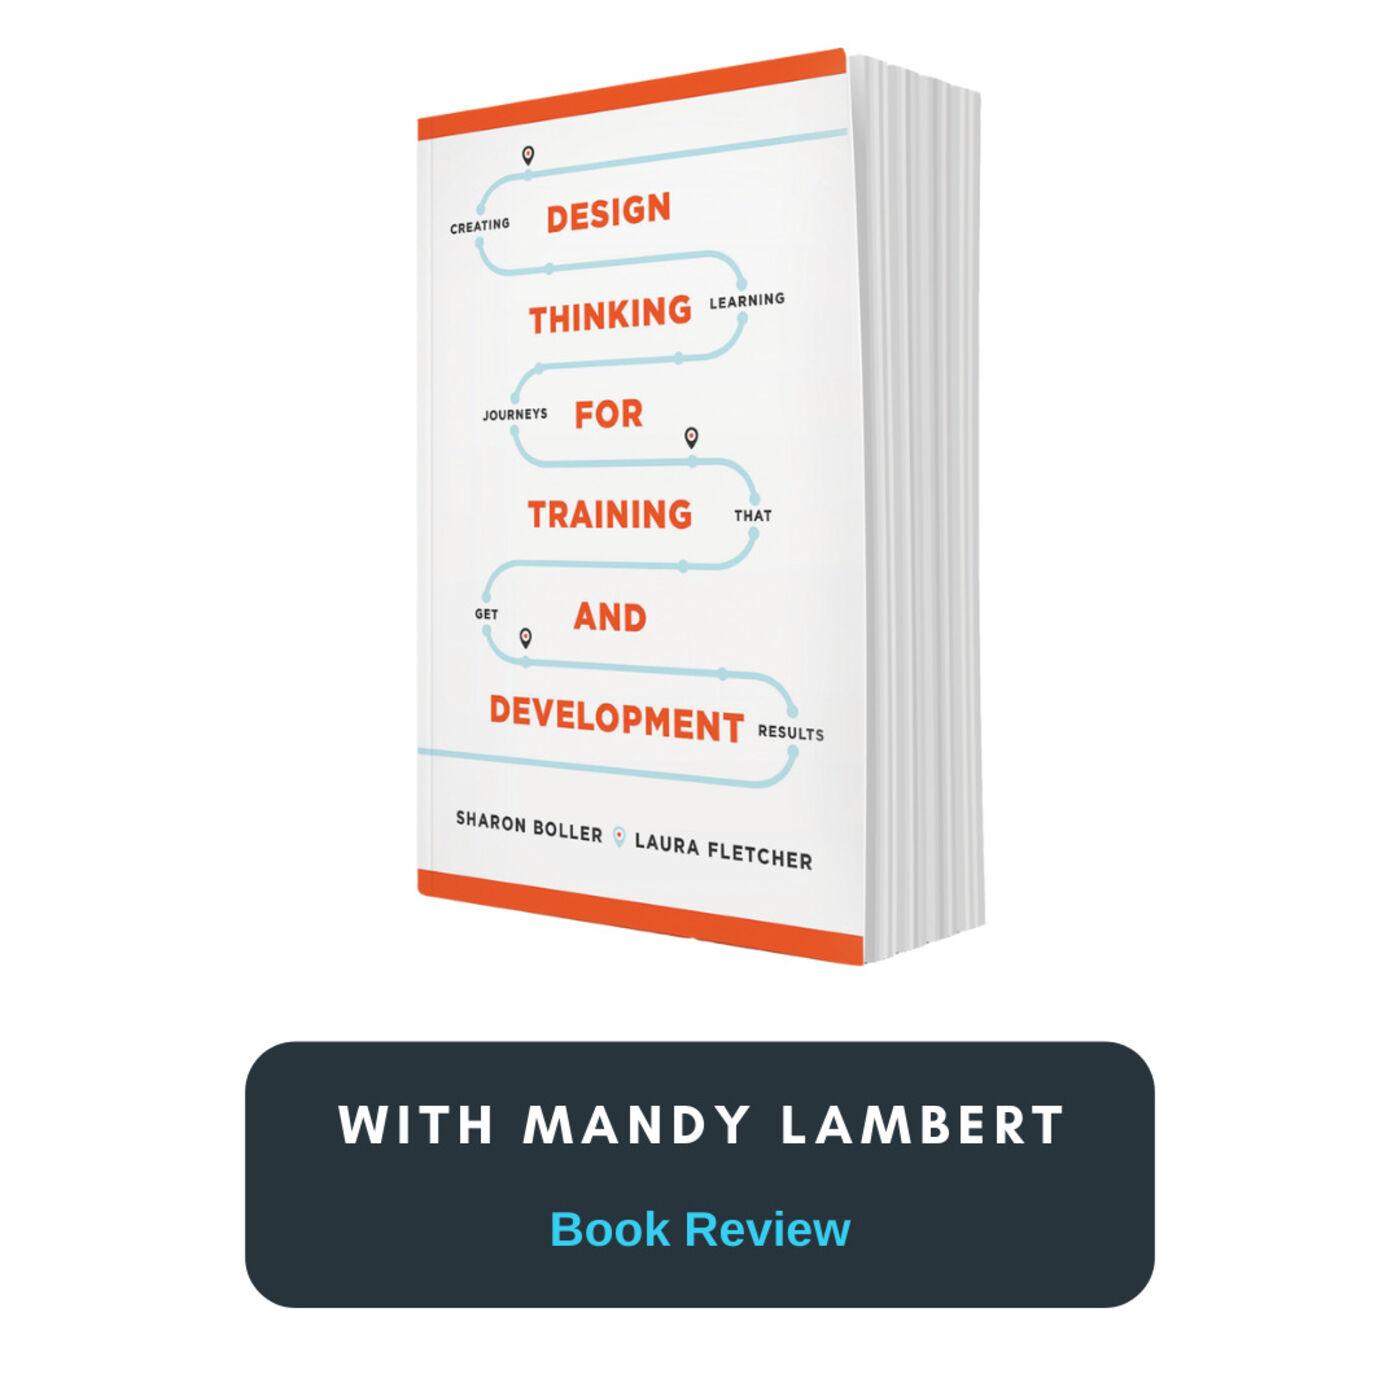 Book Review - Design Thinking for Training and Development with Mandy Lambert